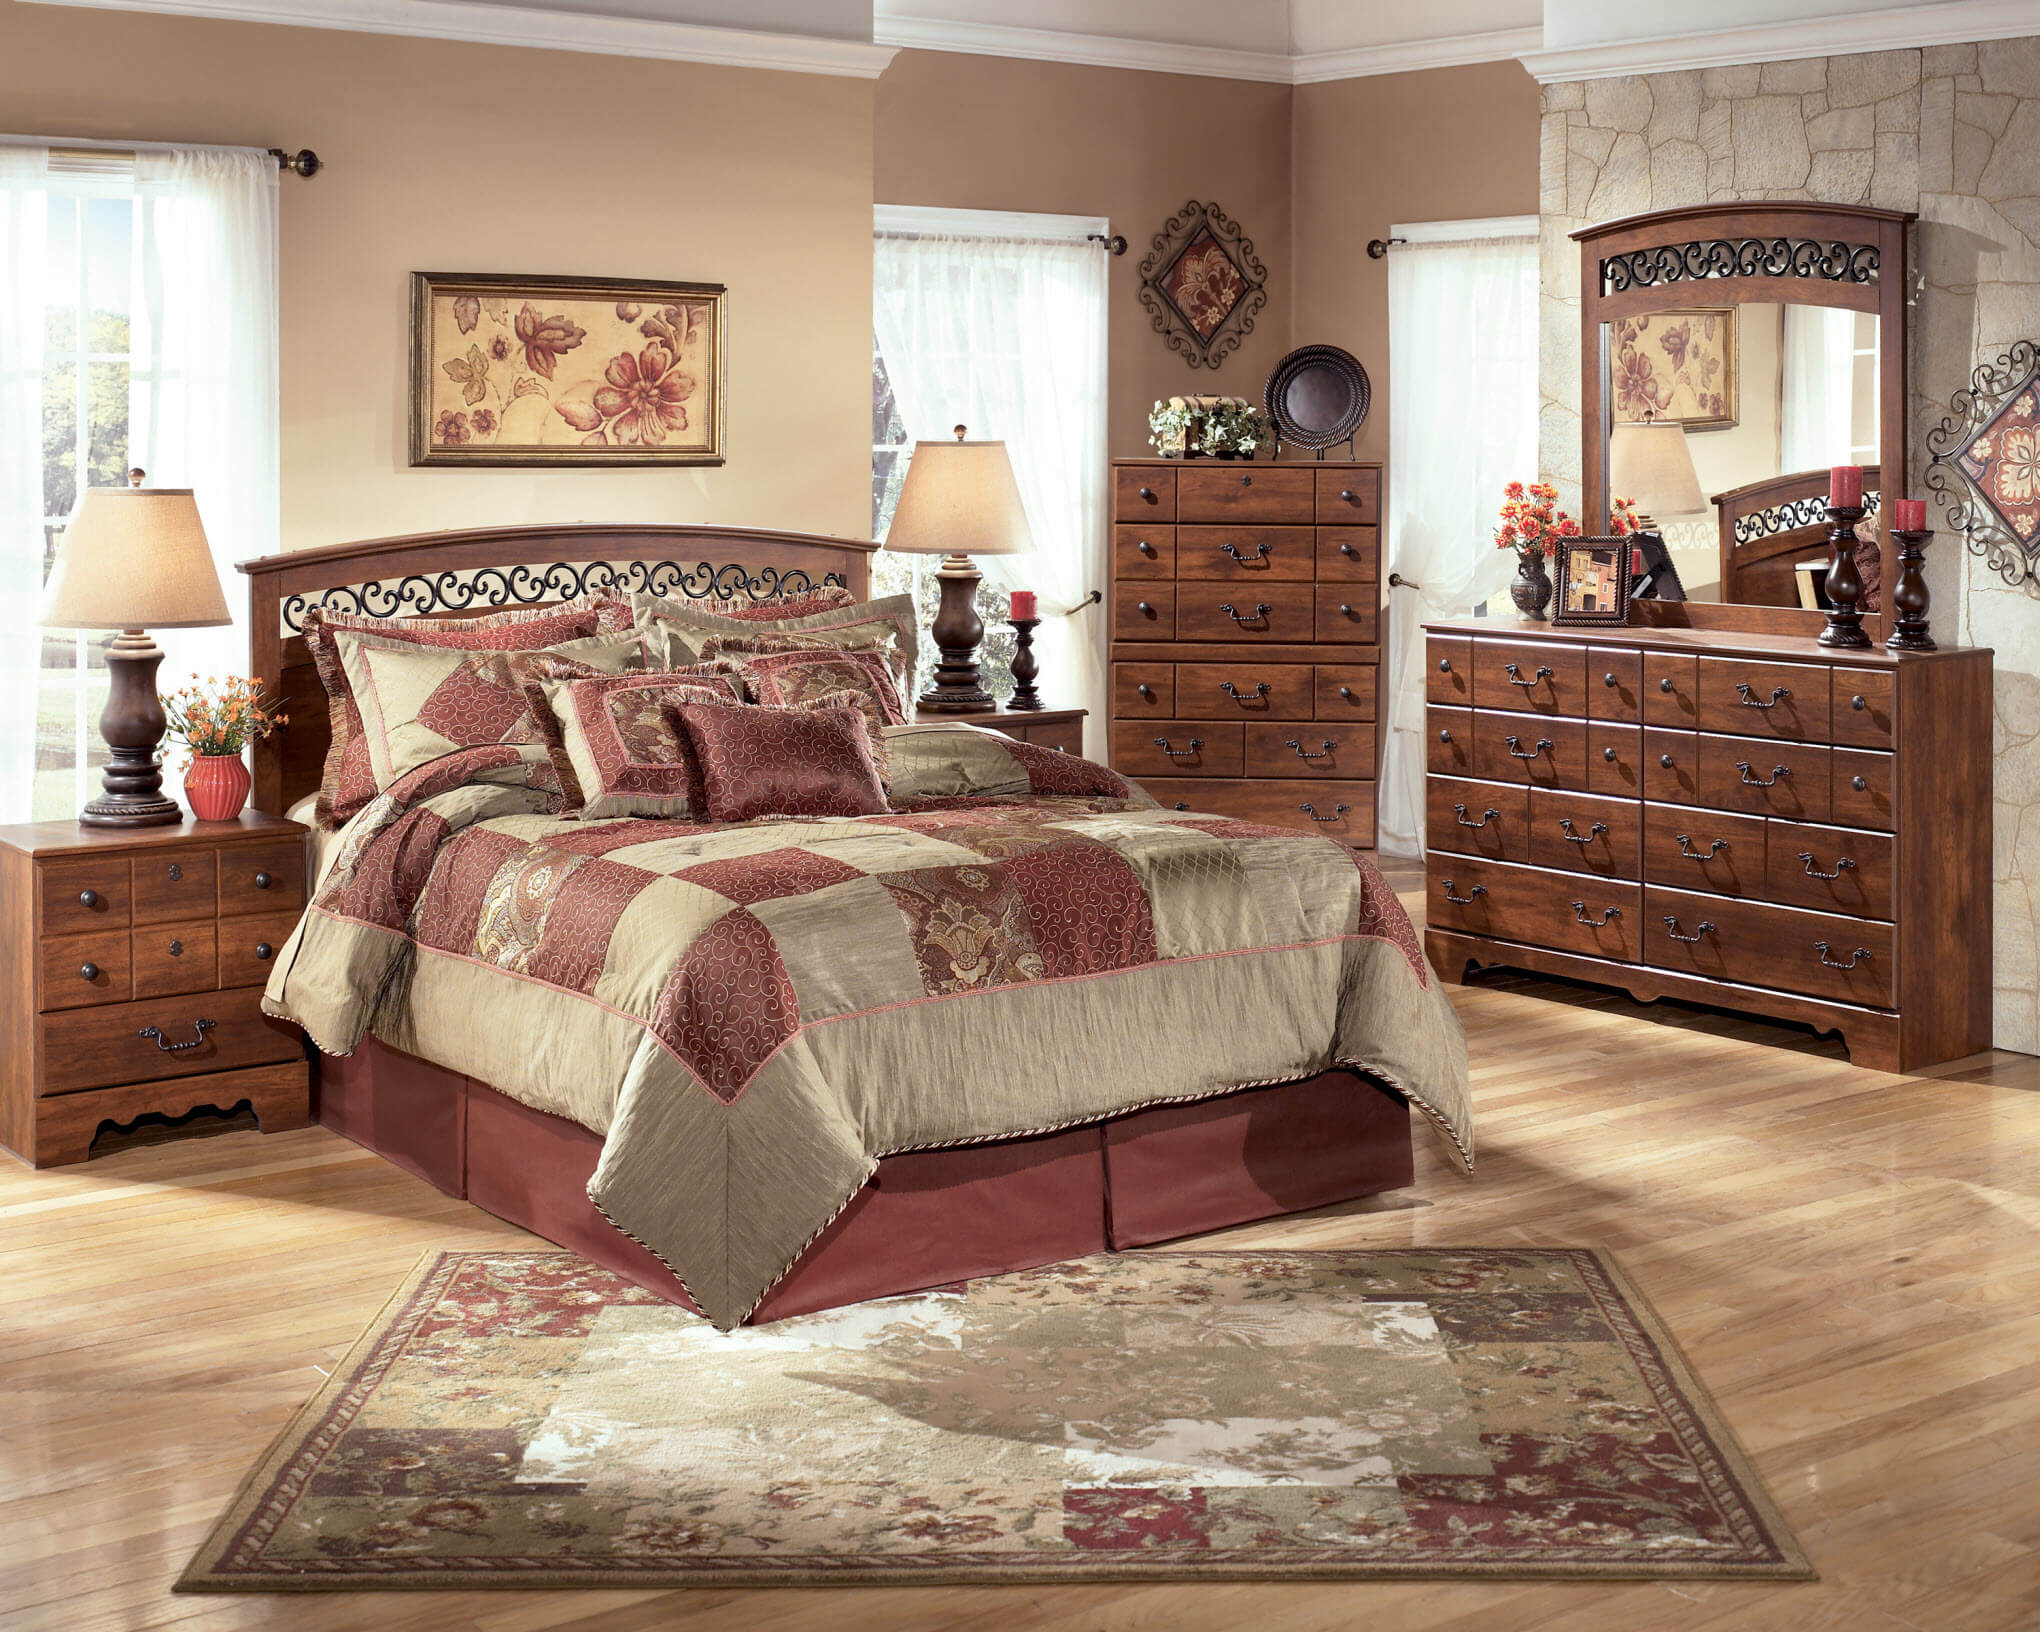 Timberline ashley bedroom set bedroom furniture sets - Ashley furniture bedroom packages ...